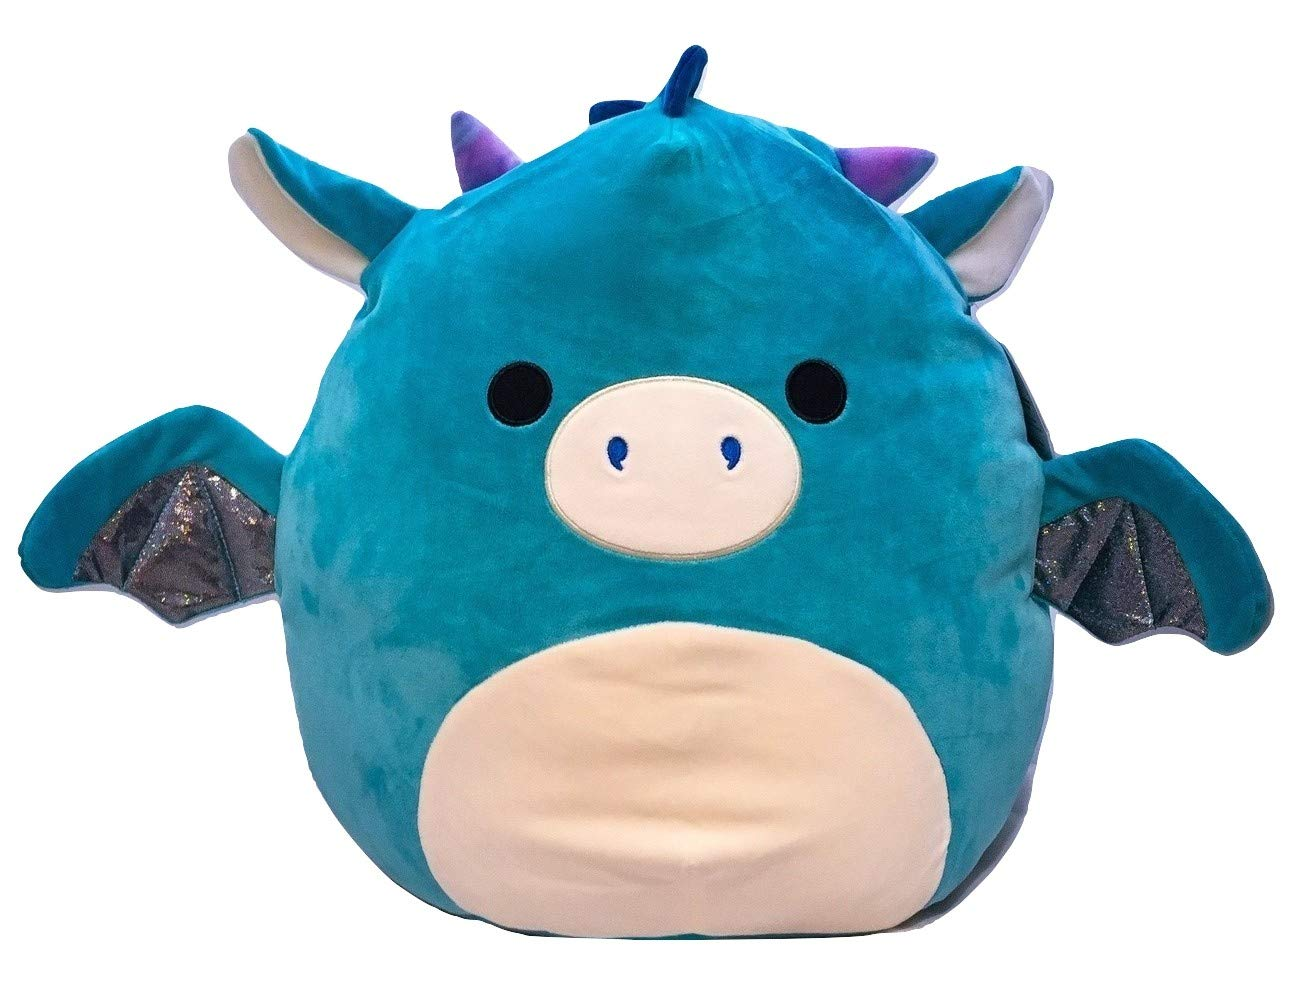 Squishmallow Kellytoy 16 Inch Tatiana The Blue Dragon - Super Soft Plush Toy Pillow Pet Animal Pillow Pal Buddy Stuffed Animal Birthday Gift Holiday by Squishmallow